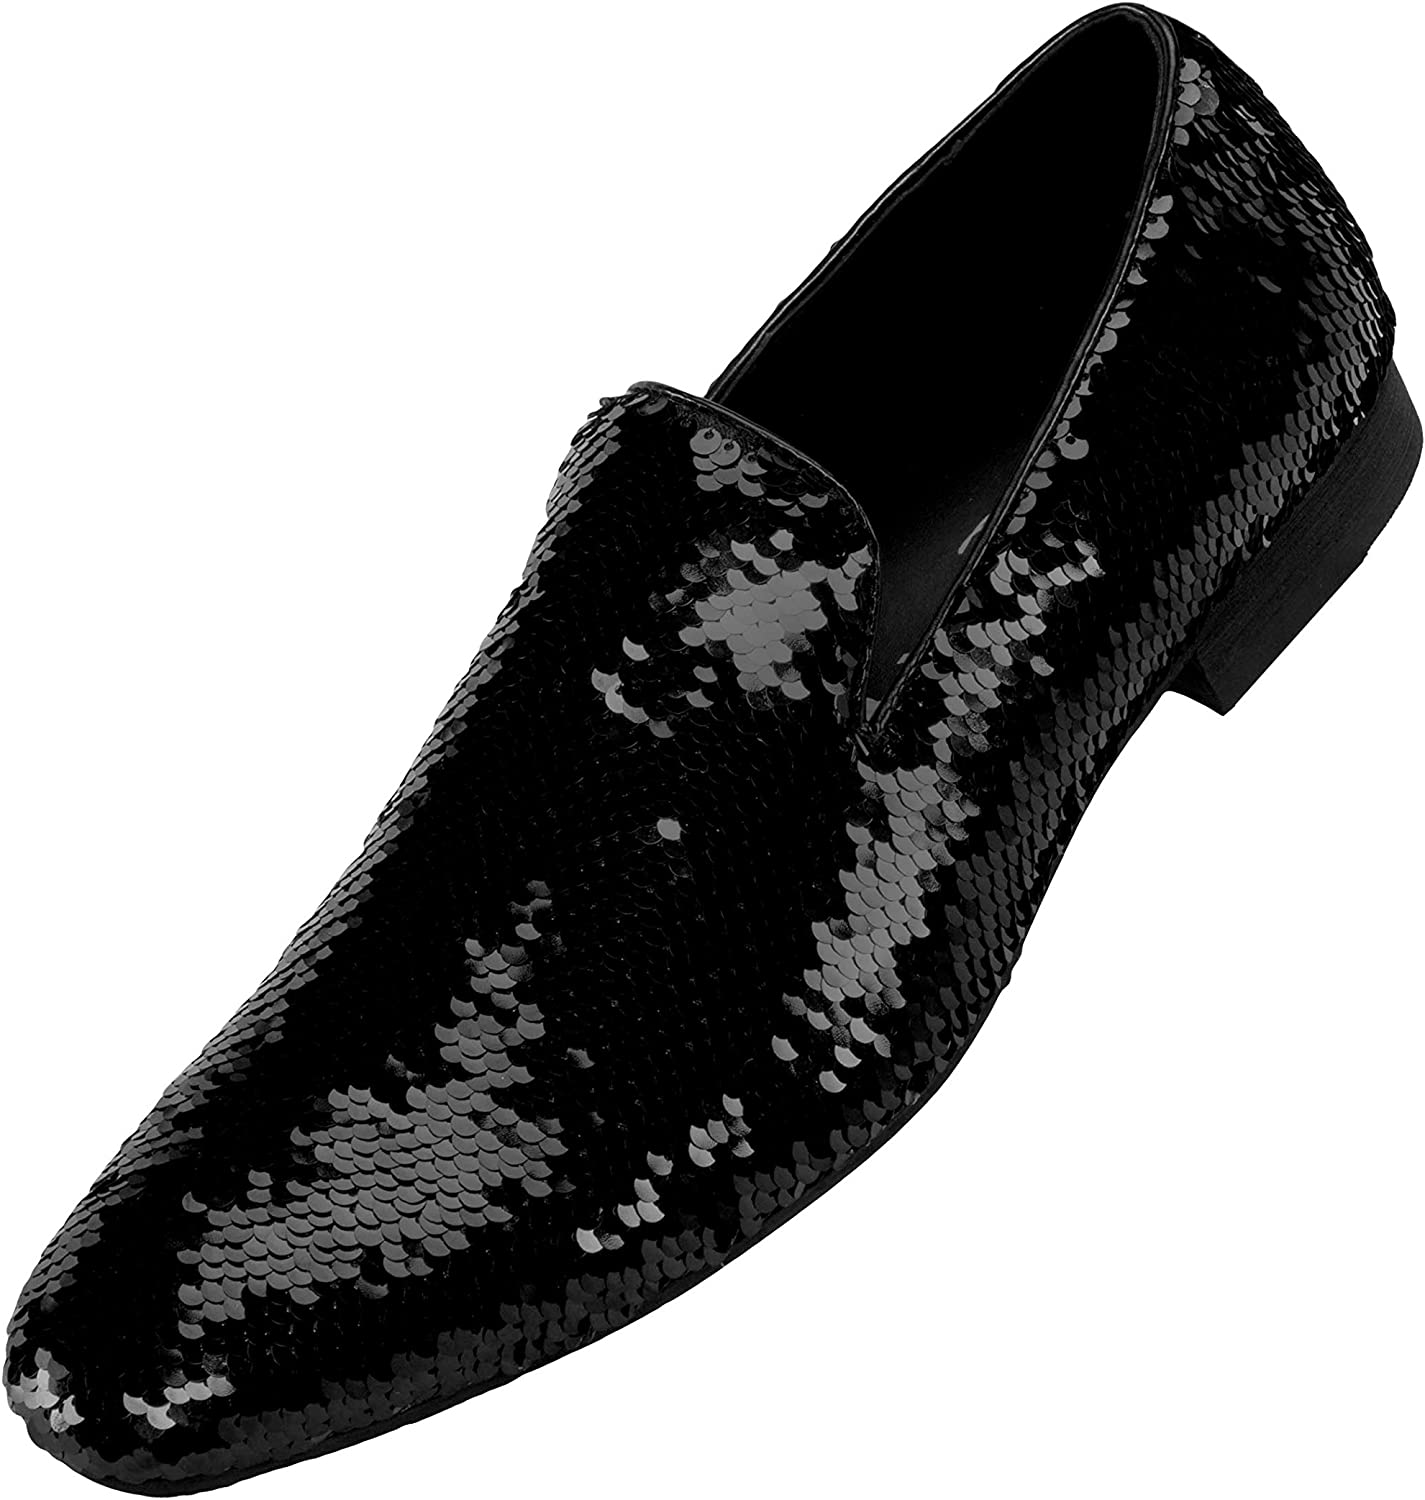 Mens Slip On Shoes, Smoking Slippers